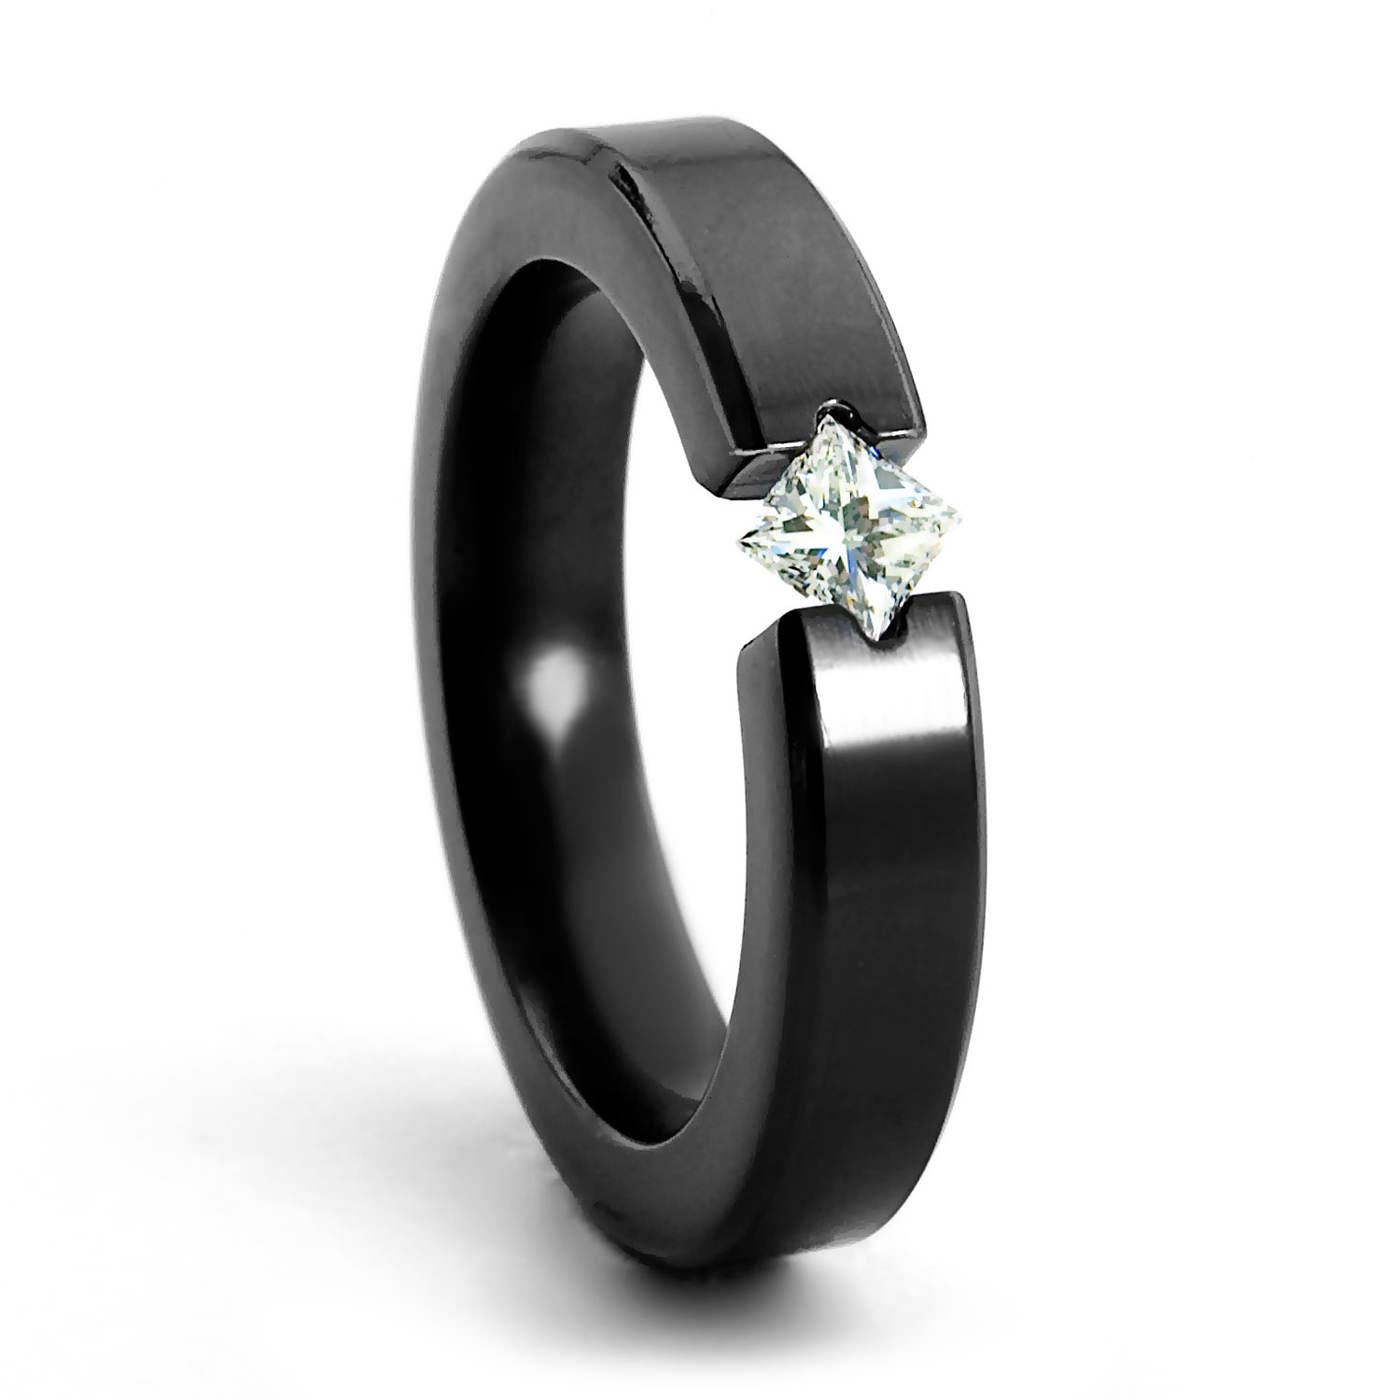 design banded rings main kevin kissing band kissingbandmatte wedding studio jewelry black